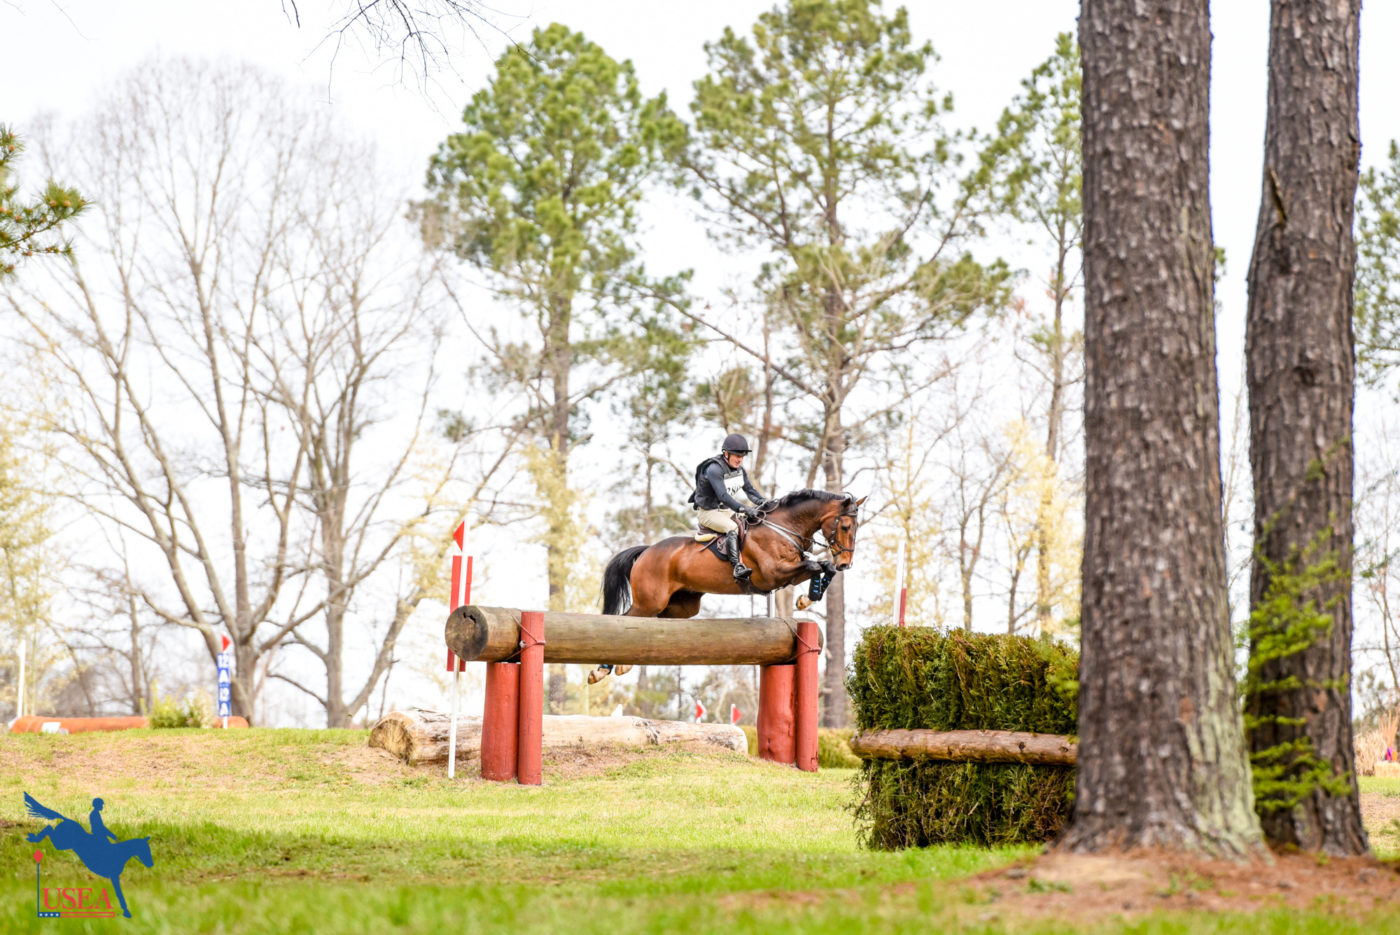 Dave Vos and Spring Centurion tackle a combination on the Intermediate course. USEA/Leslie Mintz Photo.